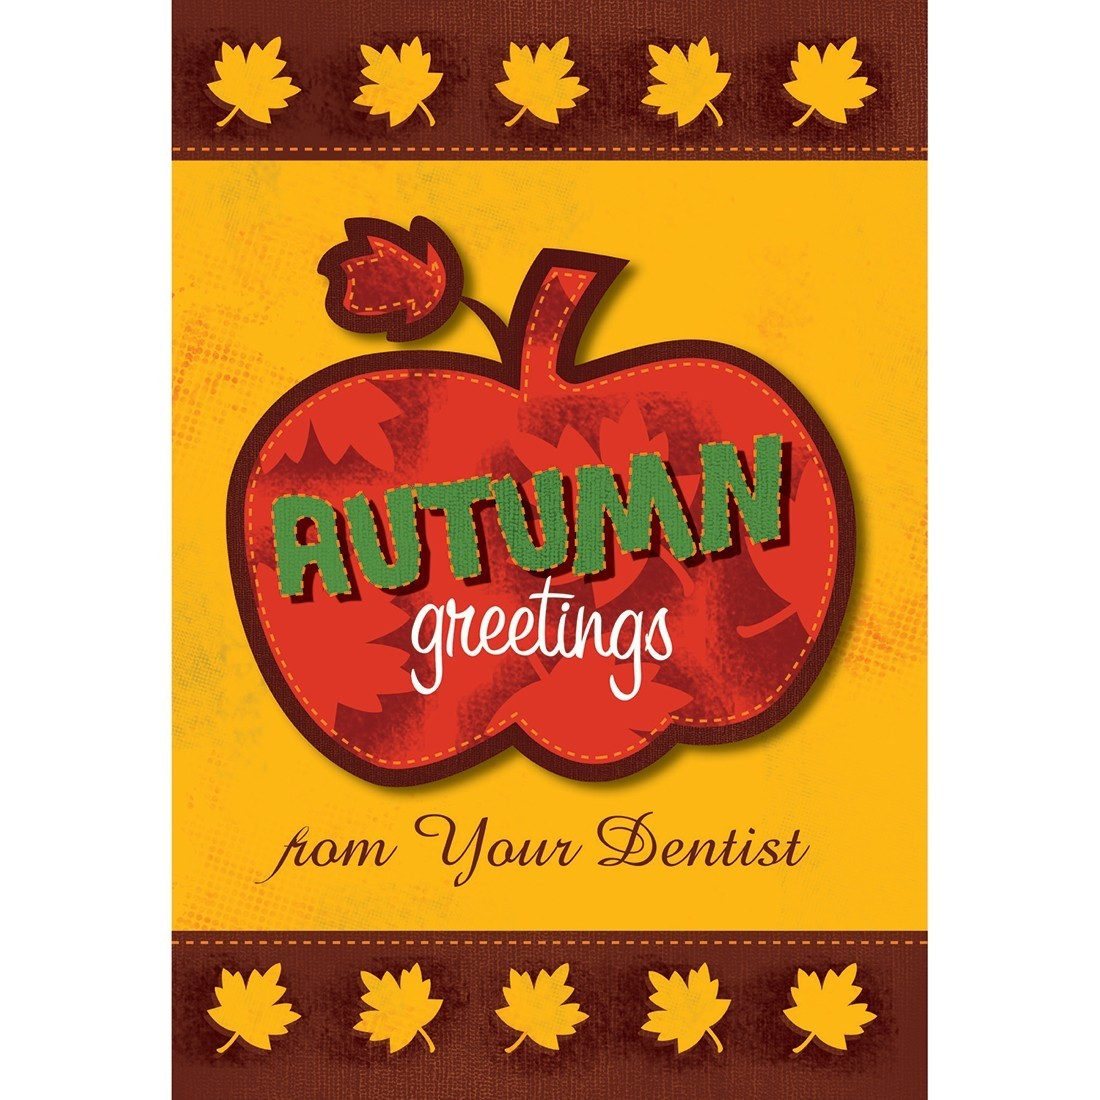 Autumn Greetings Pumpkin Greeting Cards [image]